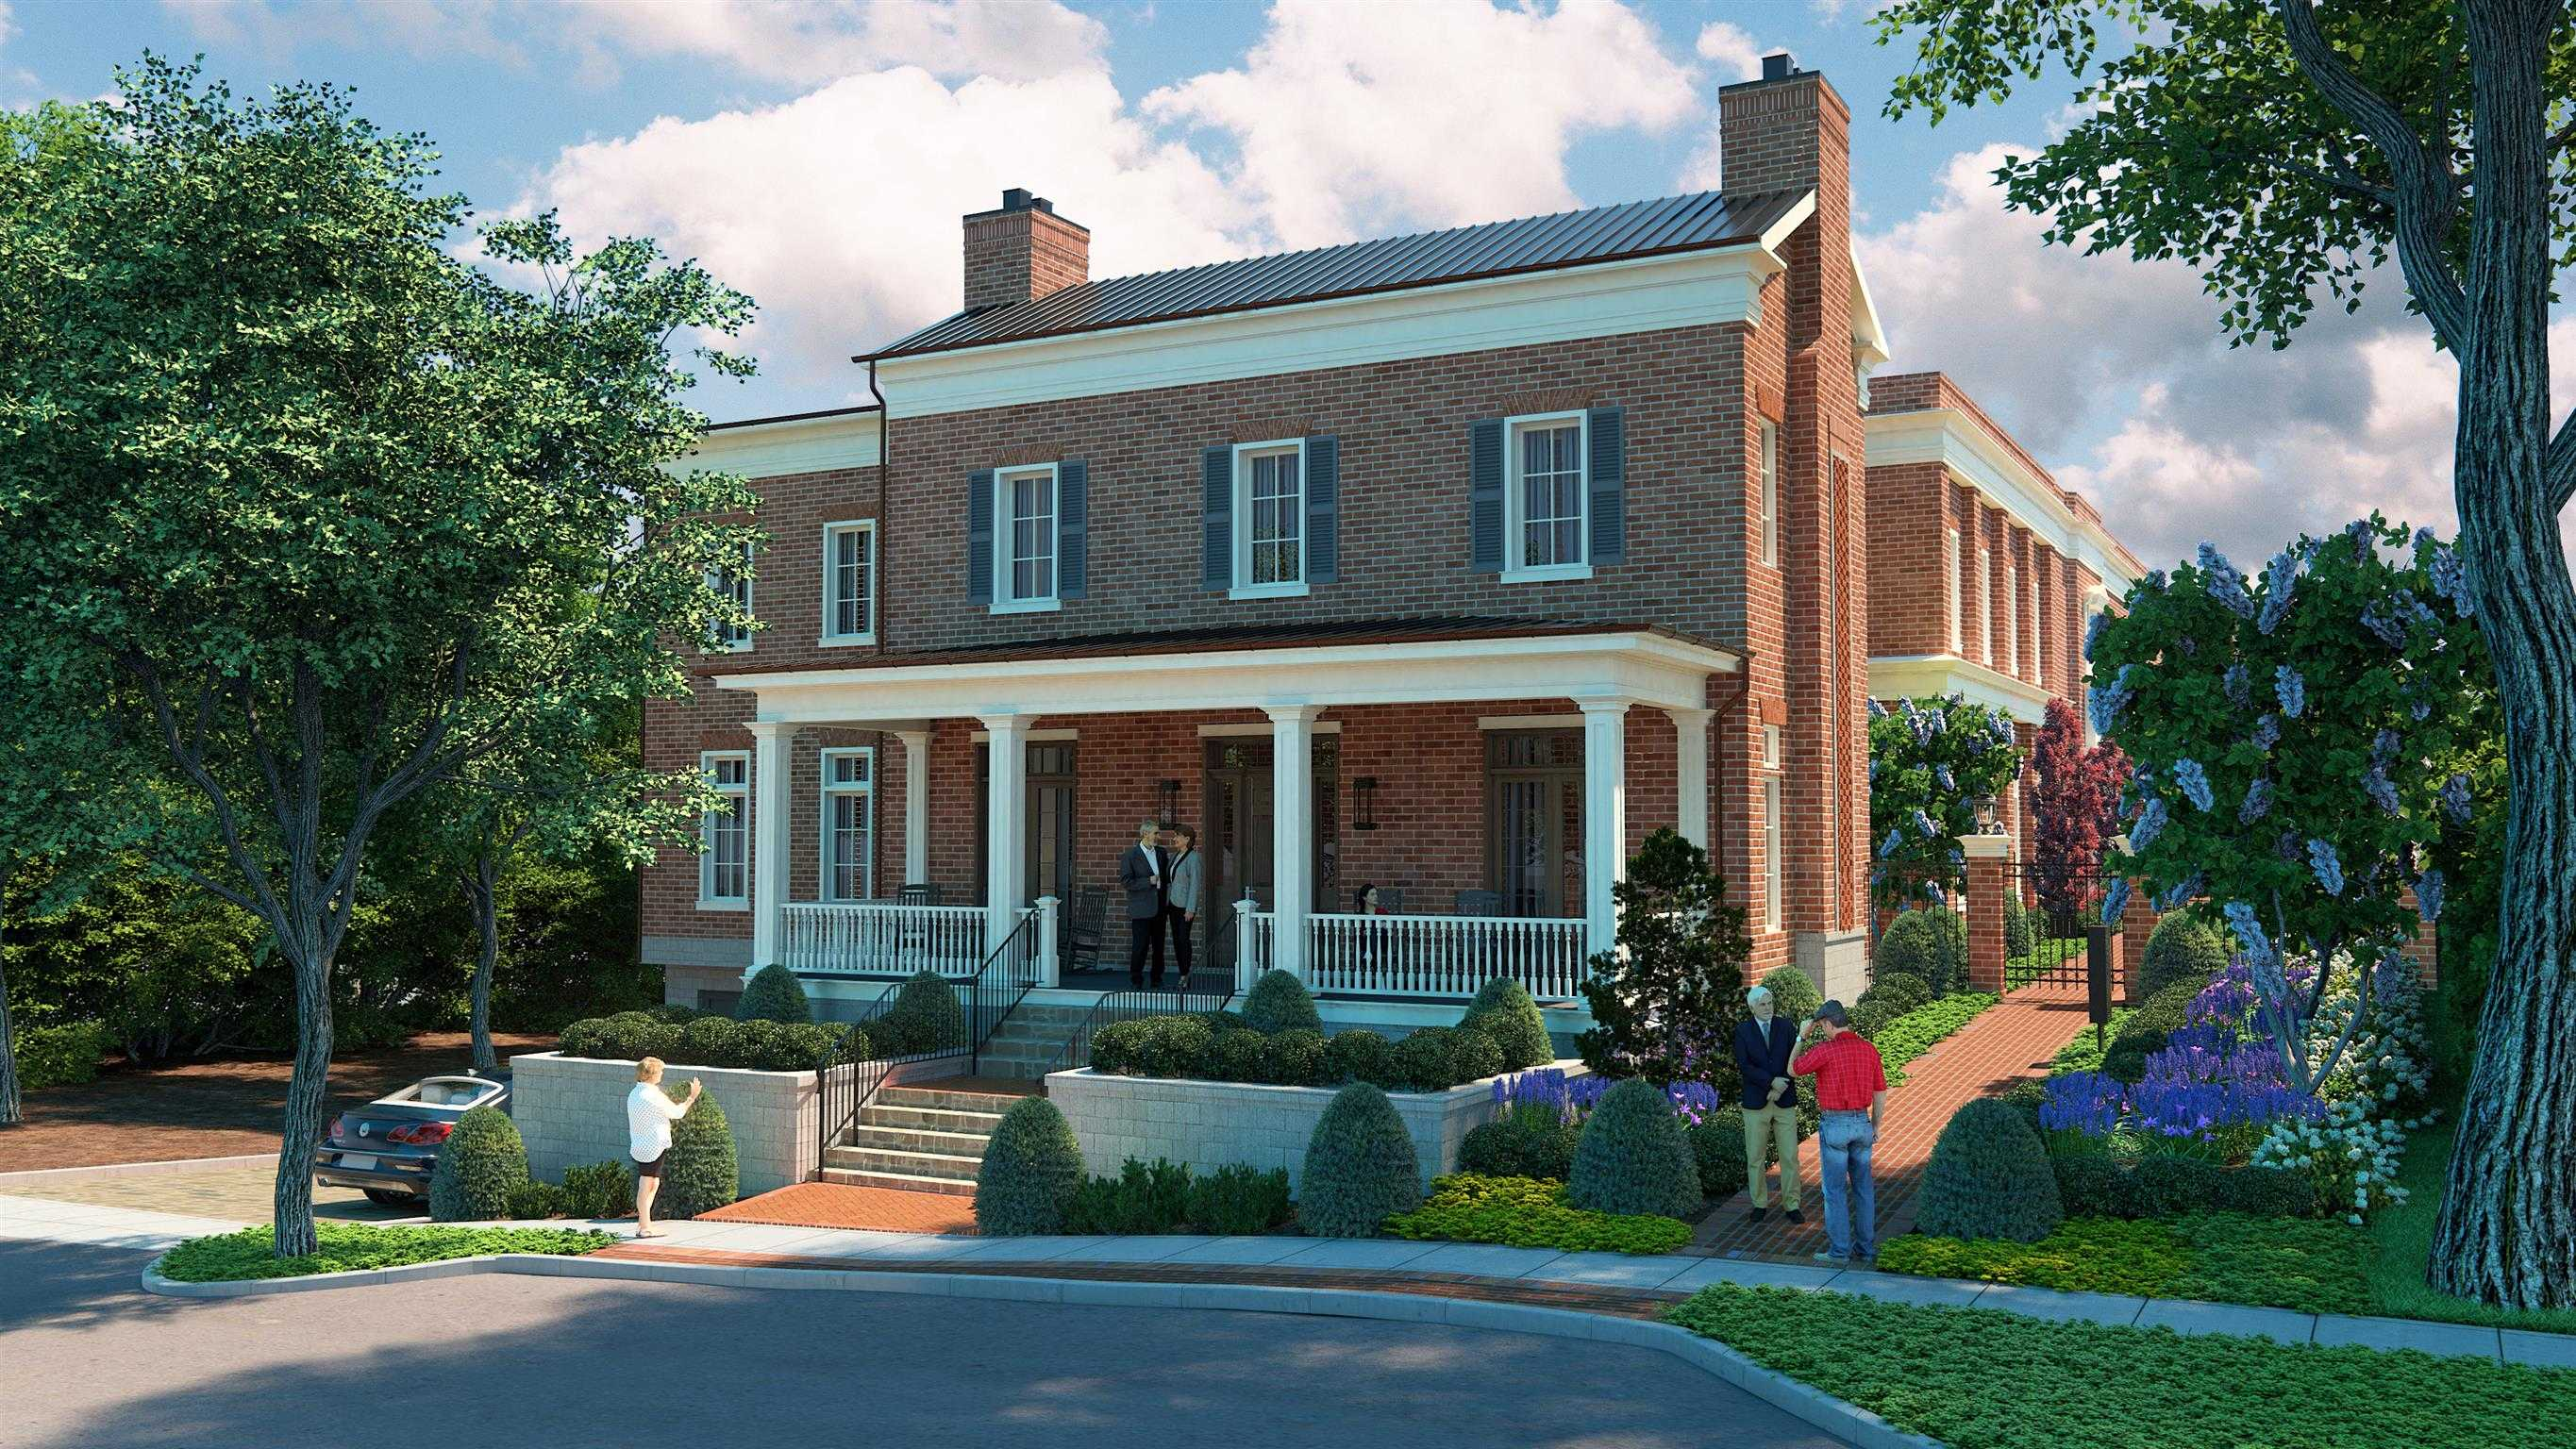 $2,477,000 - 2Br/2Ba -  for Sale in The Arlington At West Main, Franklin